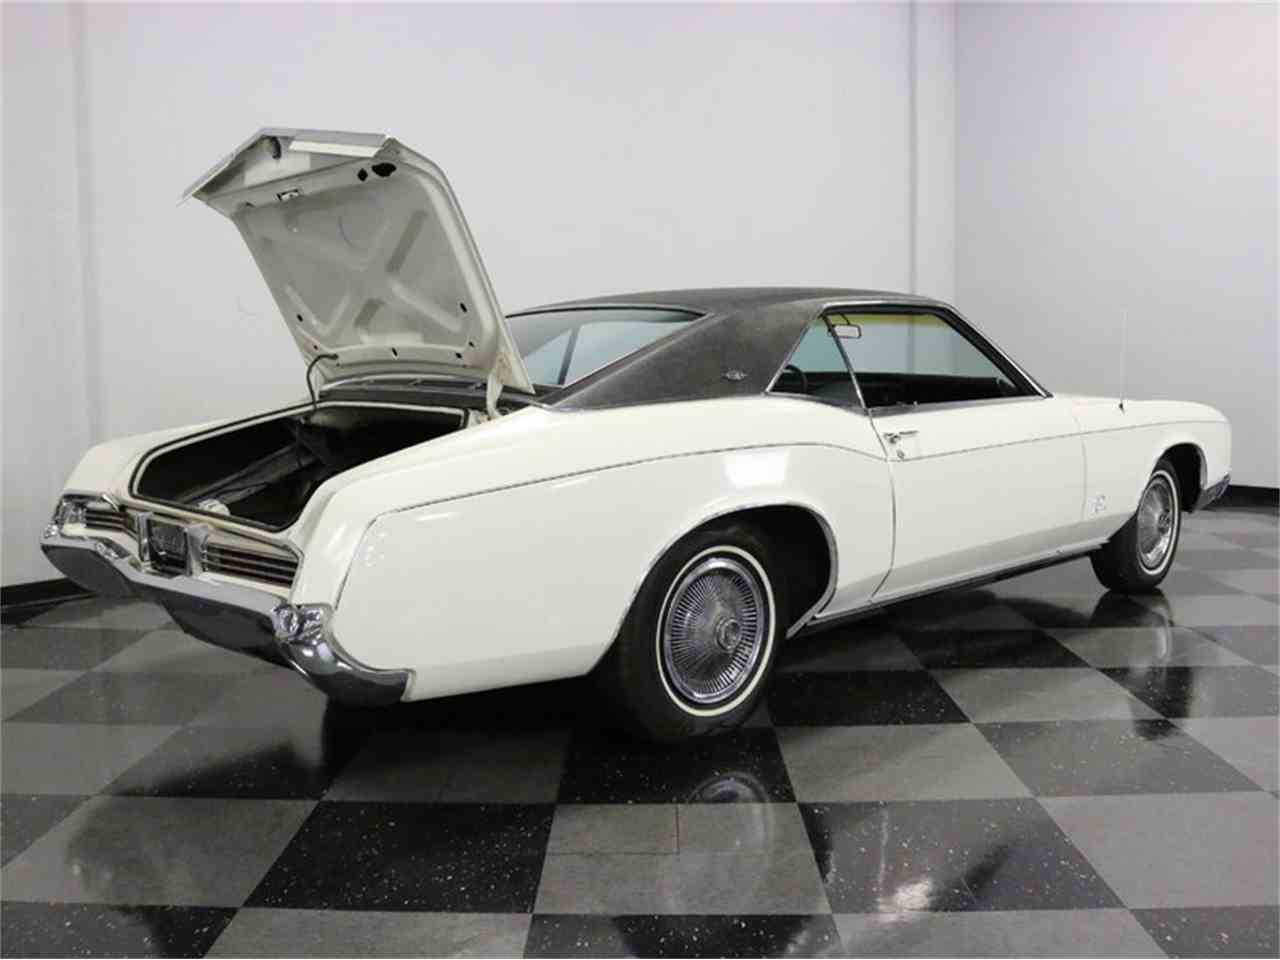 Large Picture of 1967 Buick Riviera located in Texas Offered by Streetside Classics - Dallas / Fort Worth - M5N7